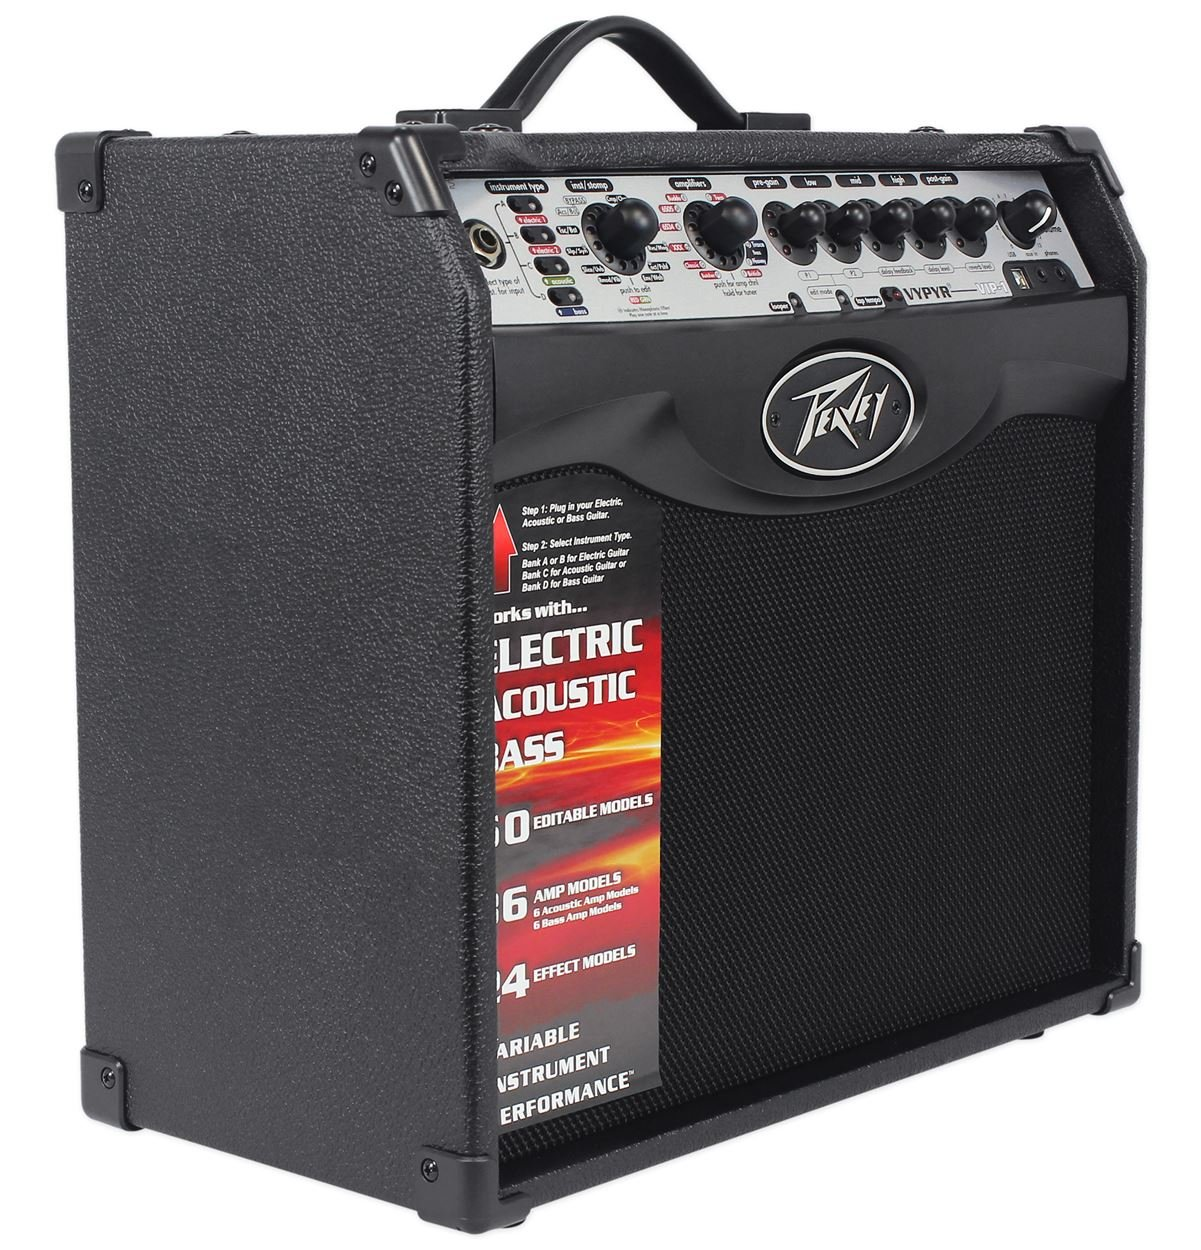 Peavey Vypyr VIP 1 20 Watt 1x8 Combo Practice Guitar Amplifier+Instrument Cable by Peavey (Image #7)